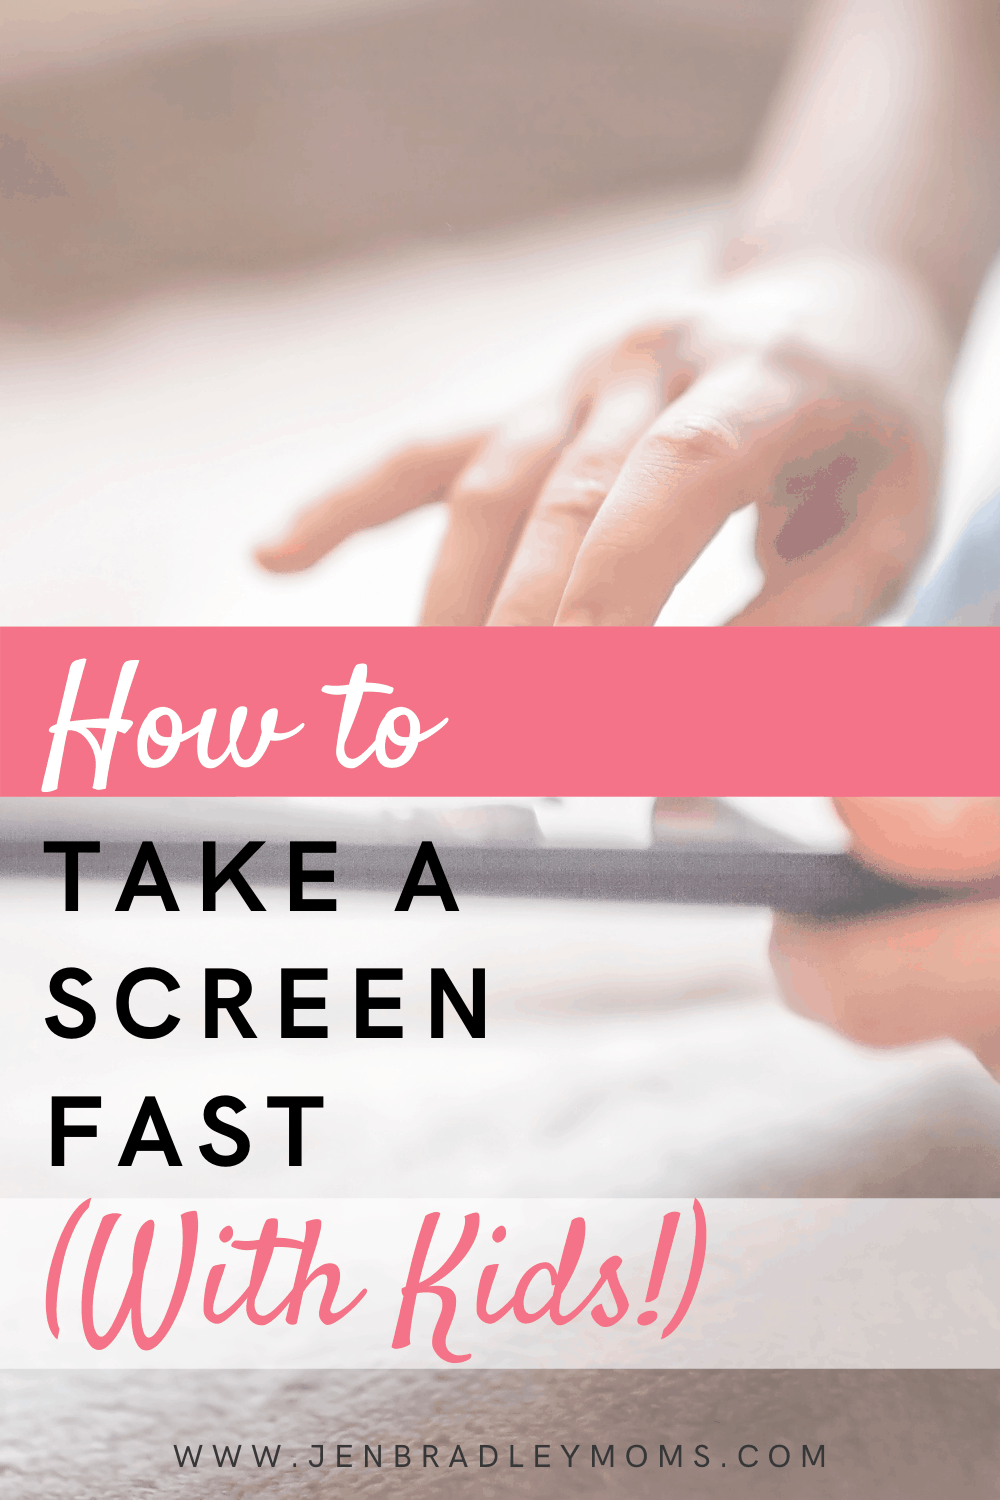 How to Have an Amazing Screen-Free Week with Your Kids